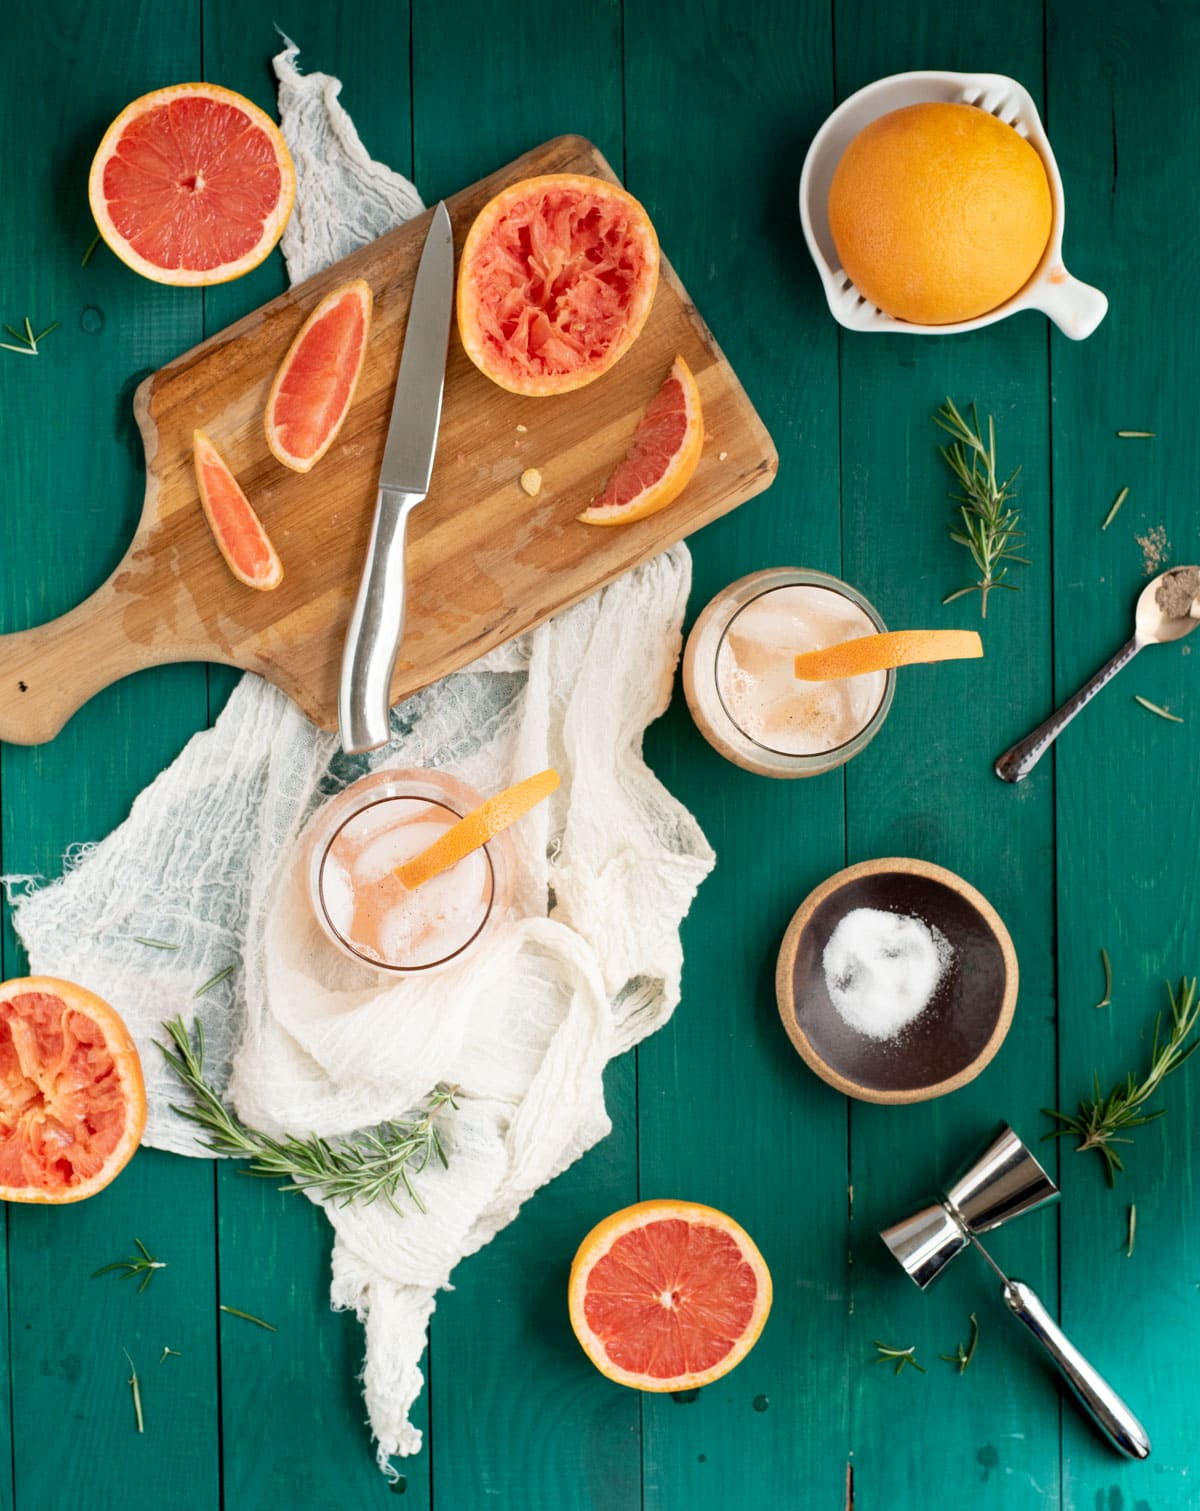 Rosemary grapefruit mocktails on a green tabletop from overhead